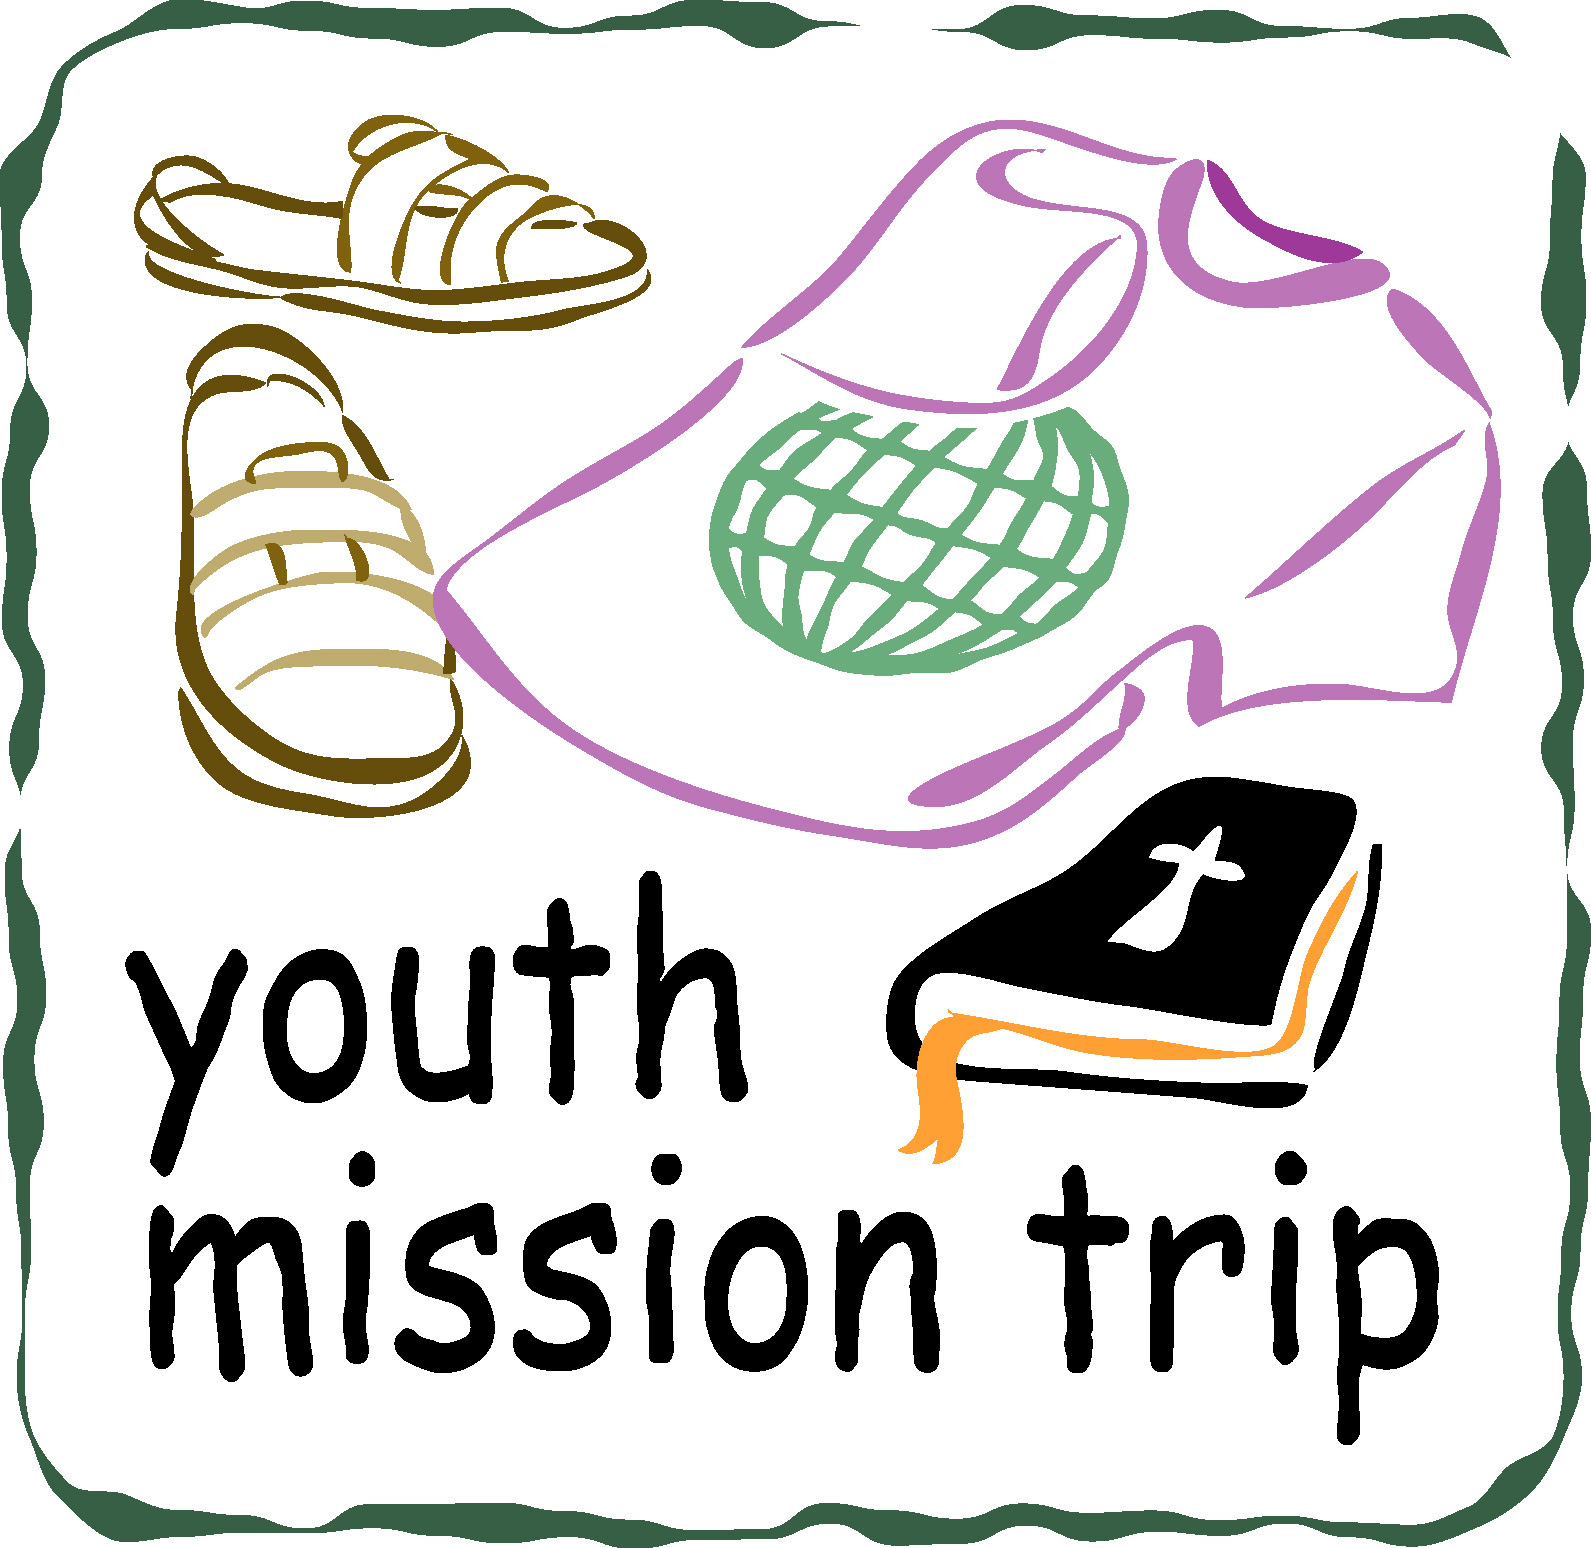 Why We Send Our Youth On Mission Trips Joe Iovino O30ah4 Clipart Suggest